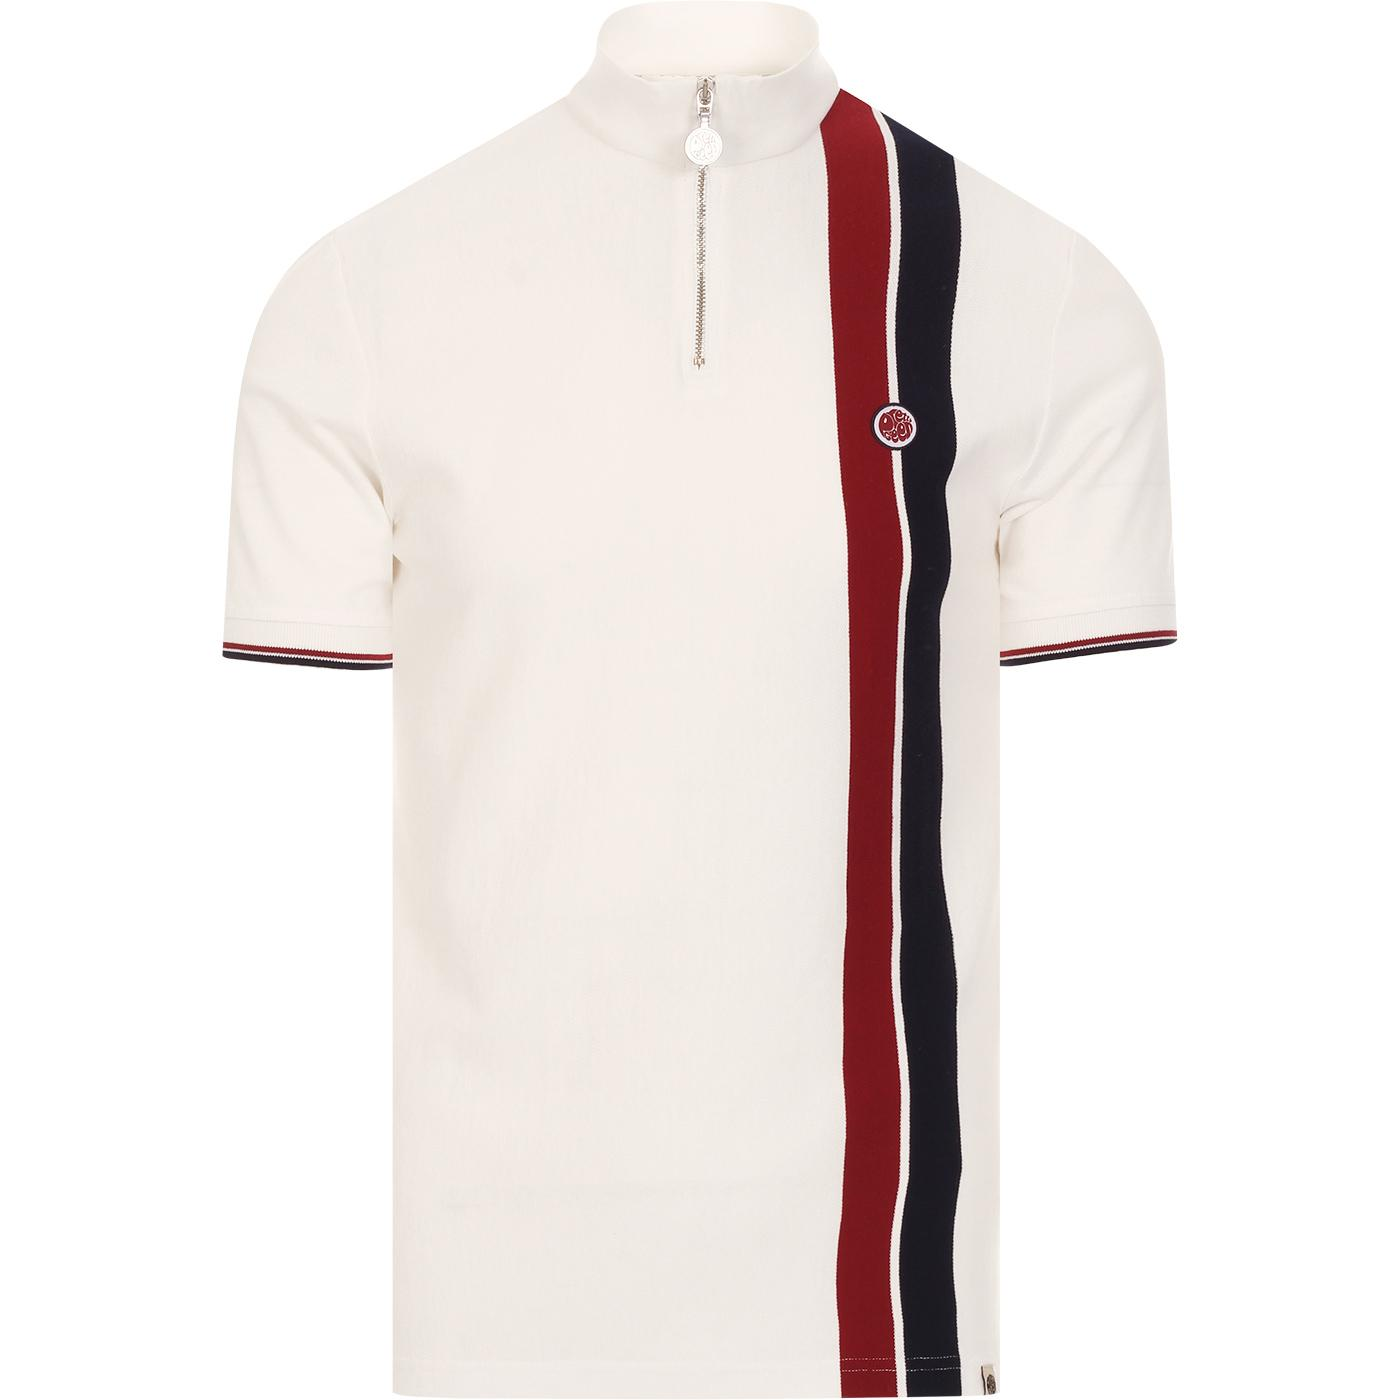 PRETTY GREEN Racing Stripe Zip Neck Cycling Top W